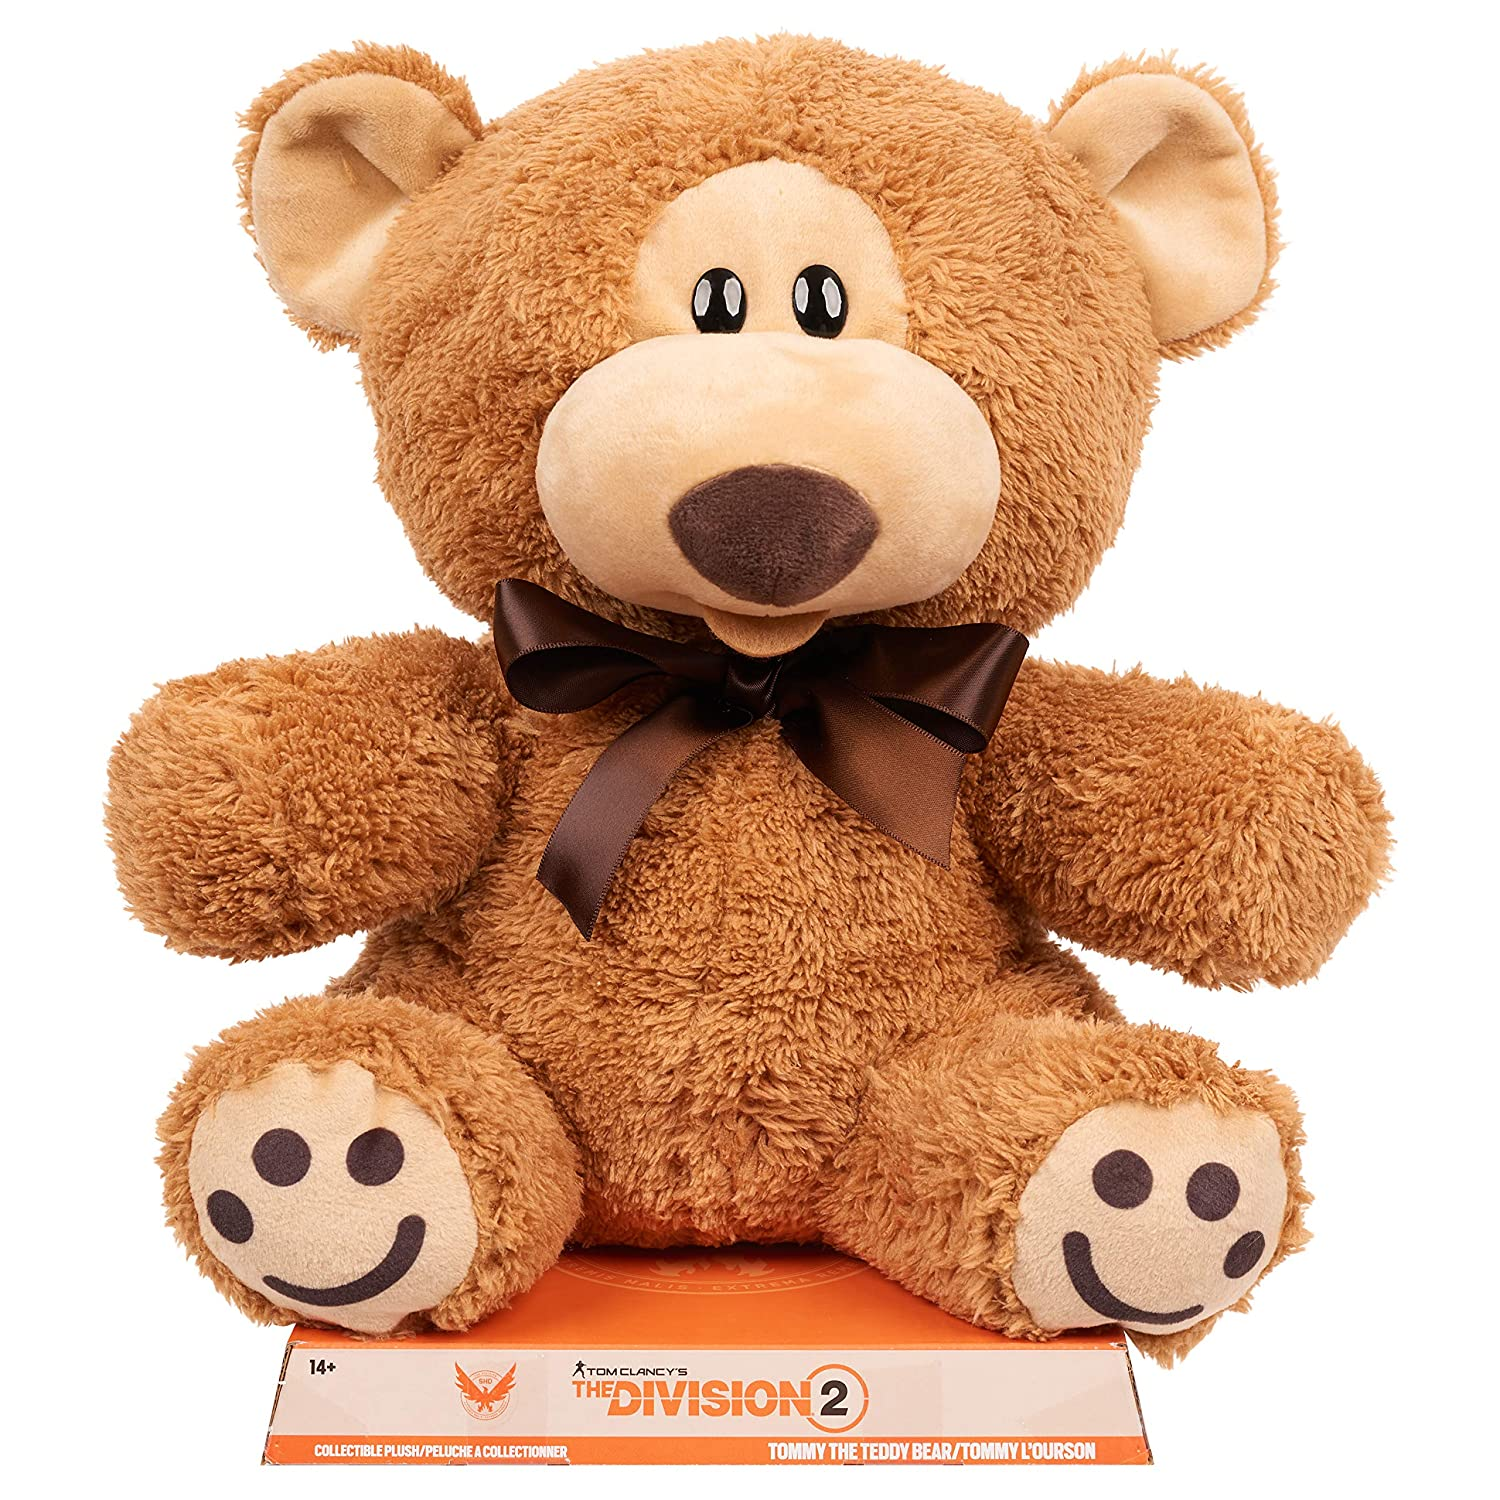 Amazon.com: Ubisoft The Division 2 Large Teddy Bear: Toys ...